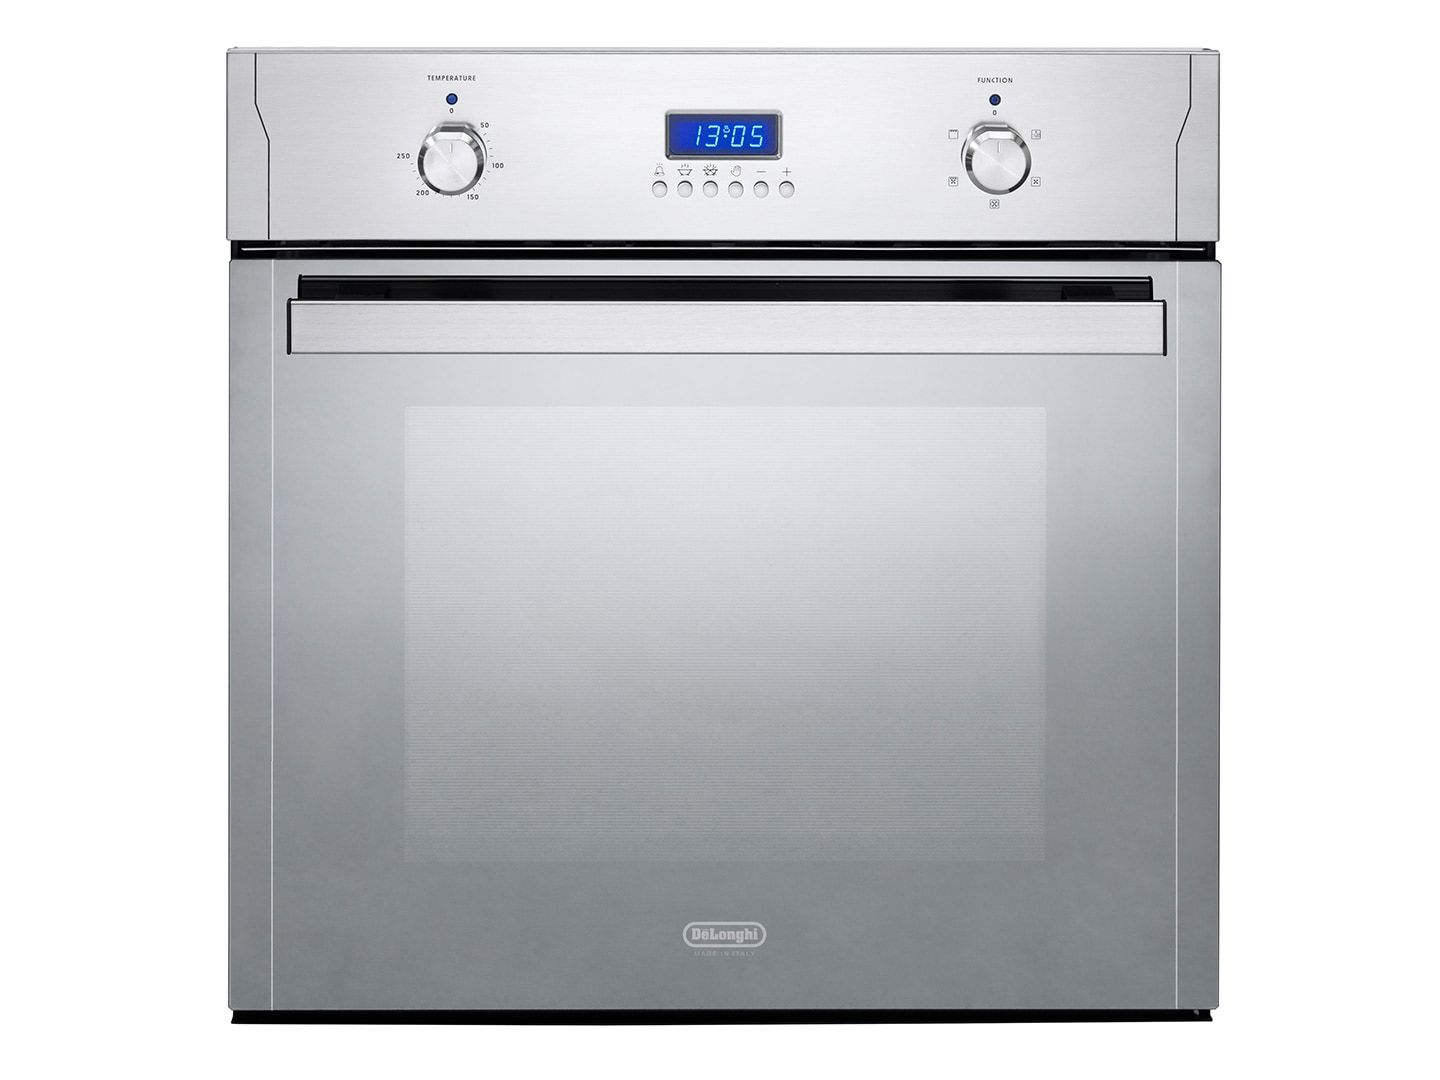 60cm 7 Function Pyrolytic Built-in Project Oven - DE607PSCP